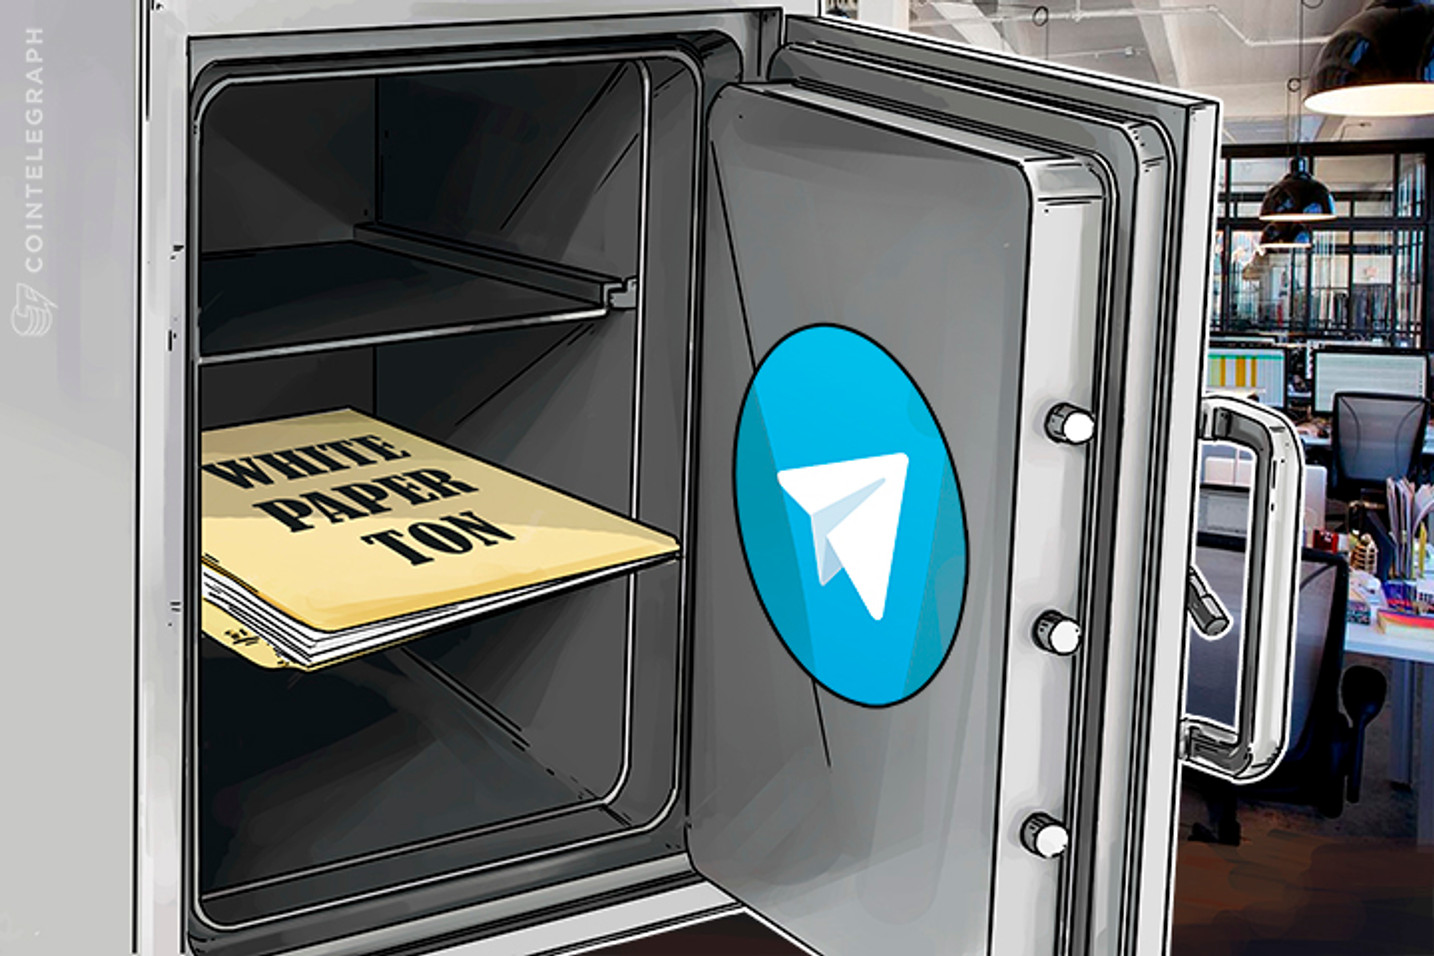 What to Make of 'Leaked' Telegram ICO White Paper